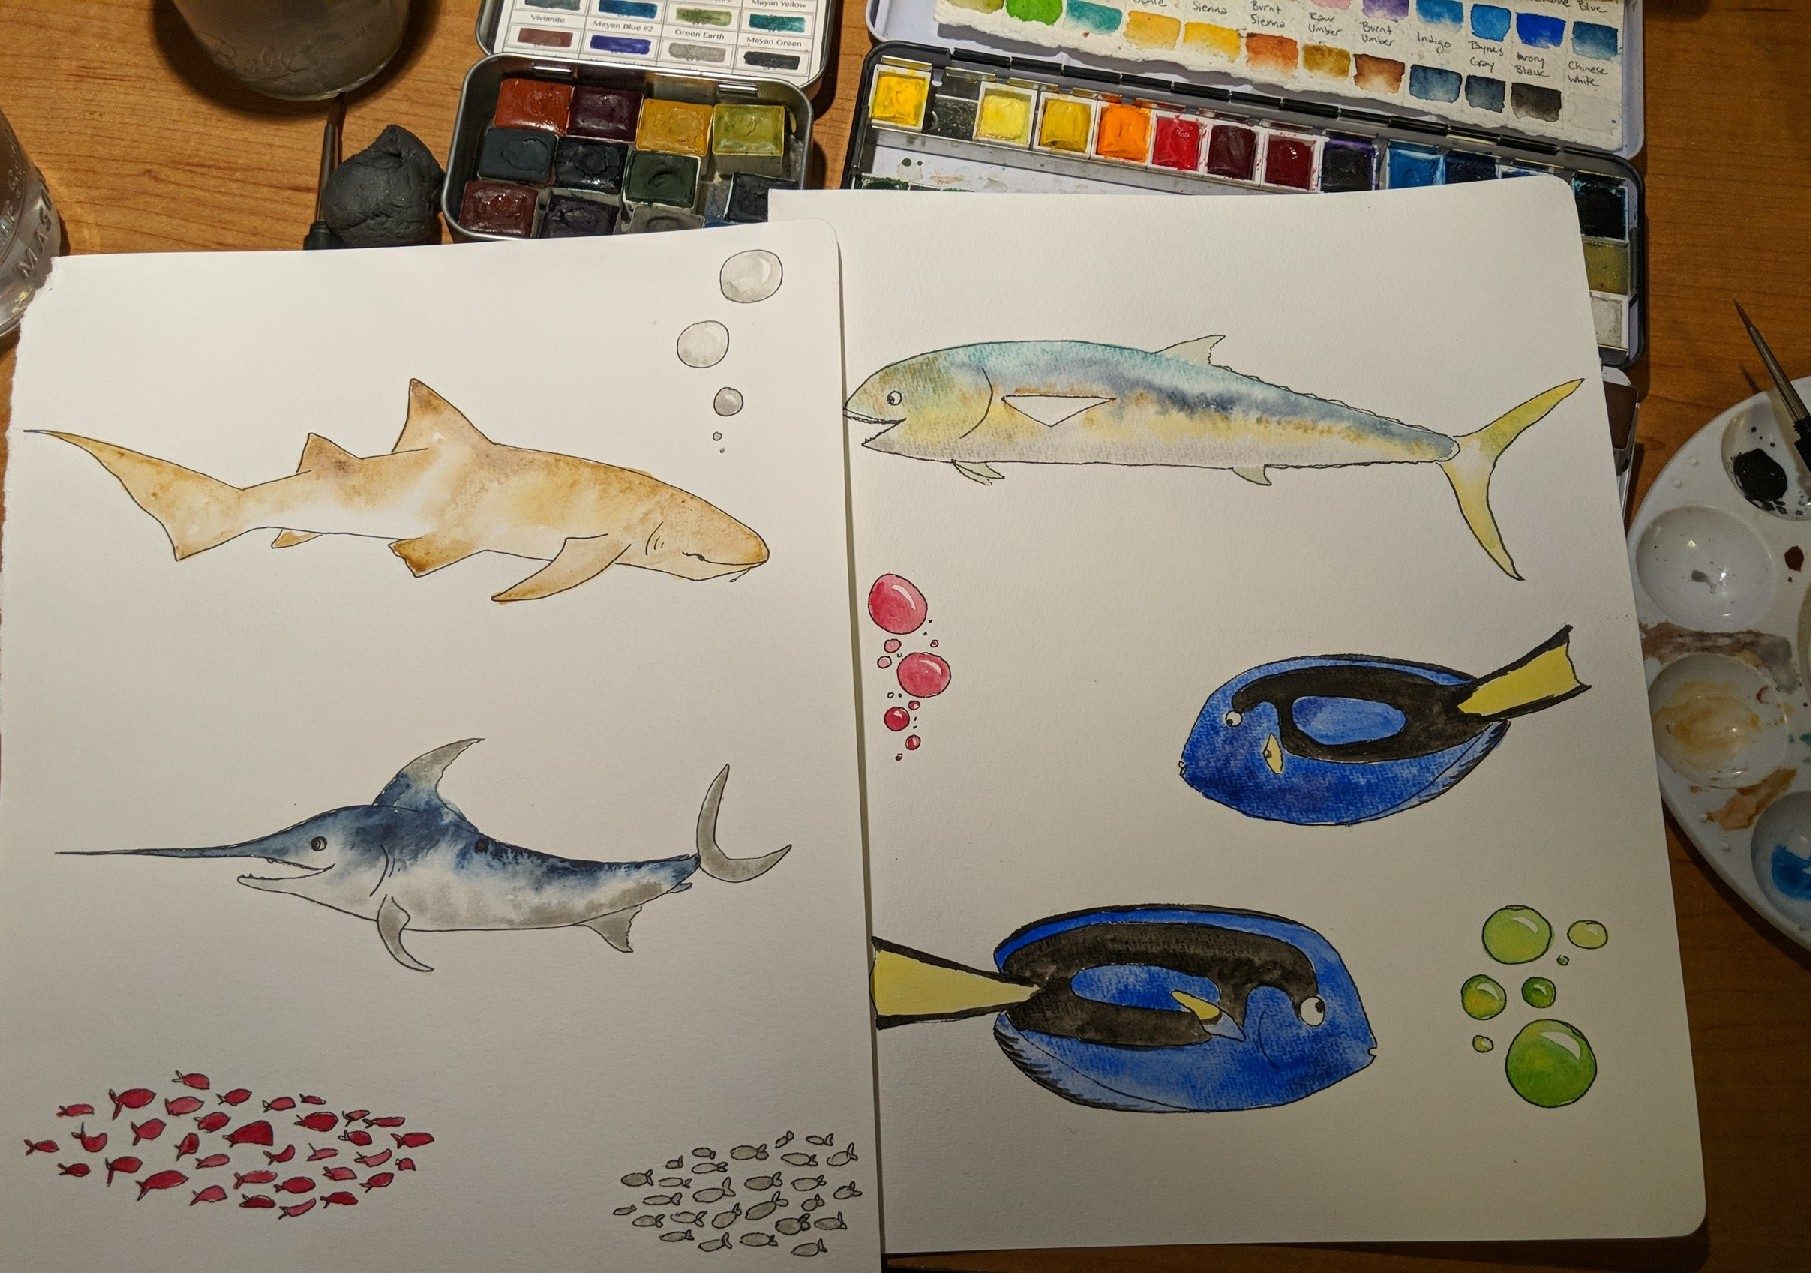 Illustrated video for NPS: Today I'm in the studio for the National Park Service filming another public service announcement about how to fish smart and be healthy. You can watch the other  finished PSA's here.